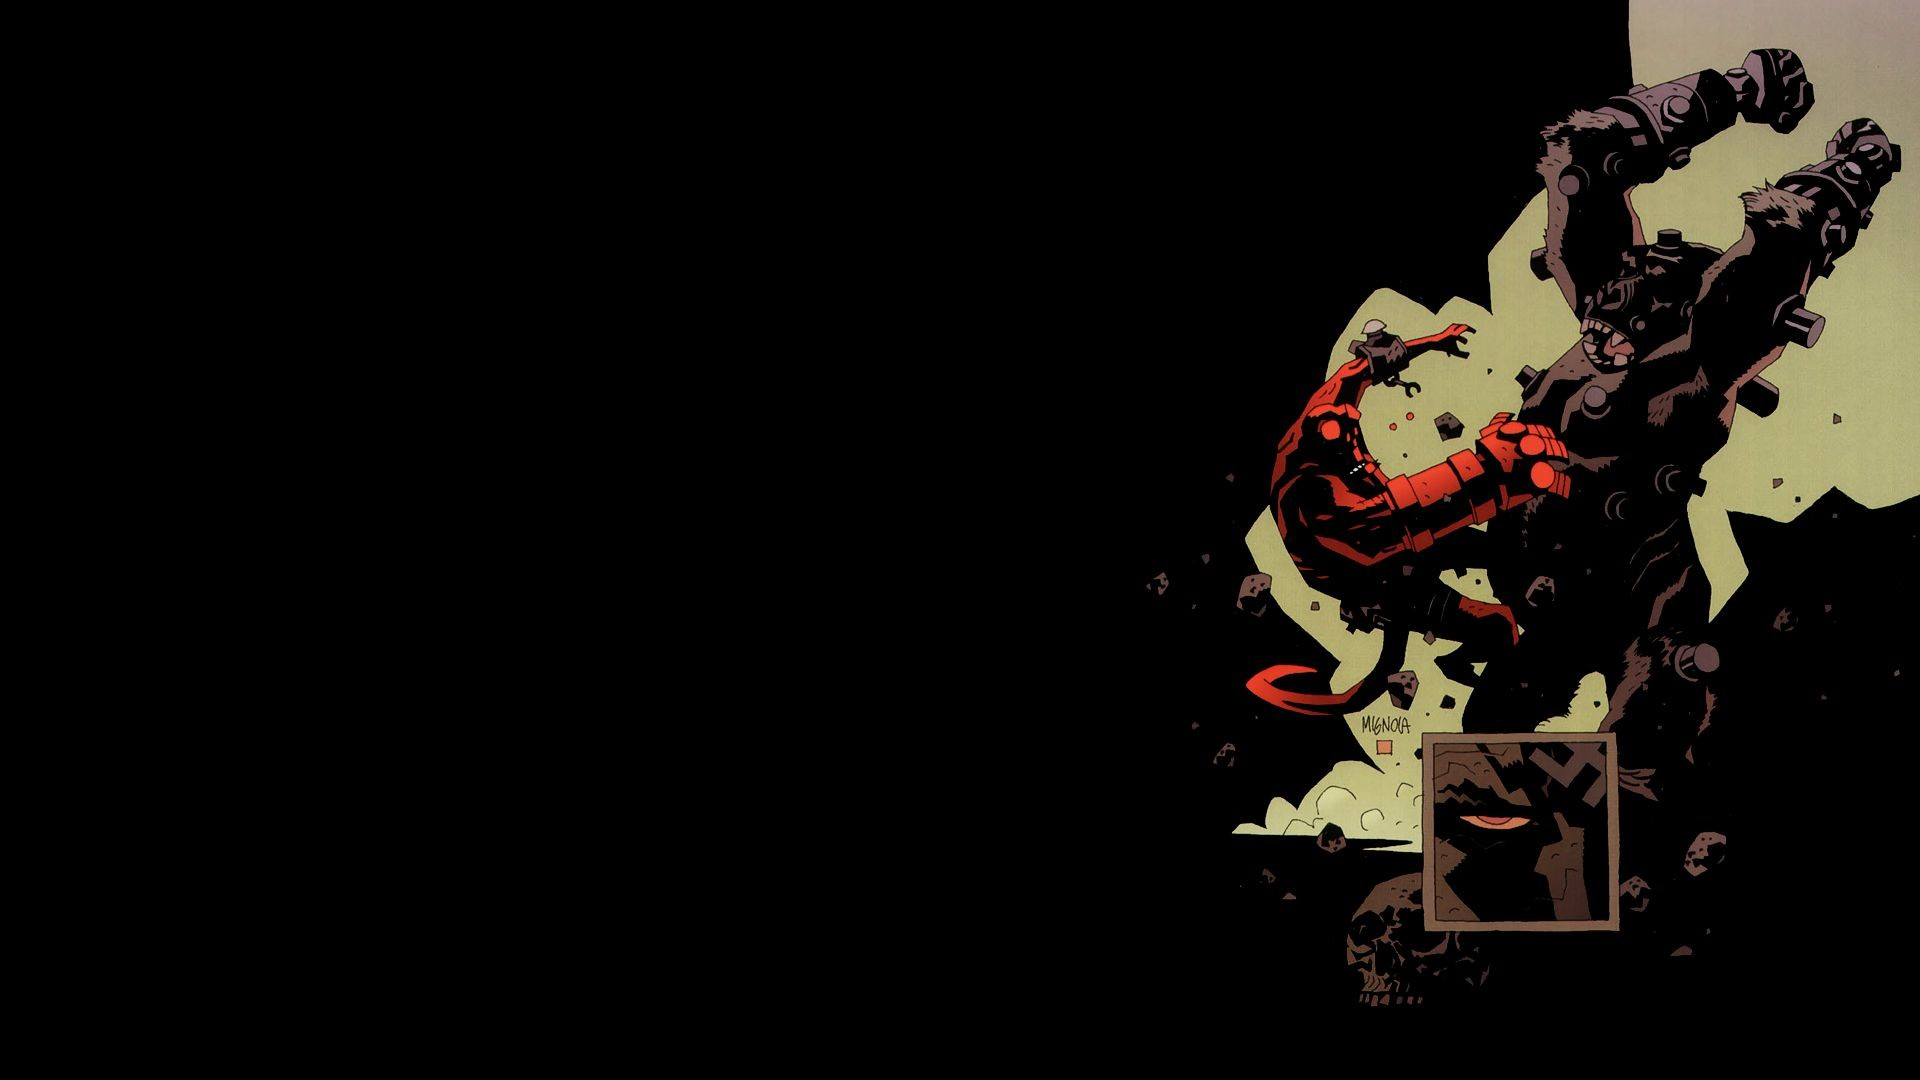 Hellboy Wallpapers For Phones 68 Images